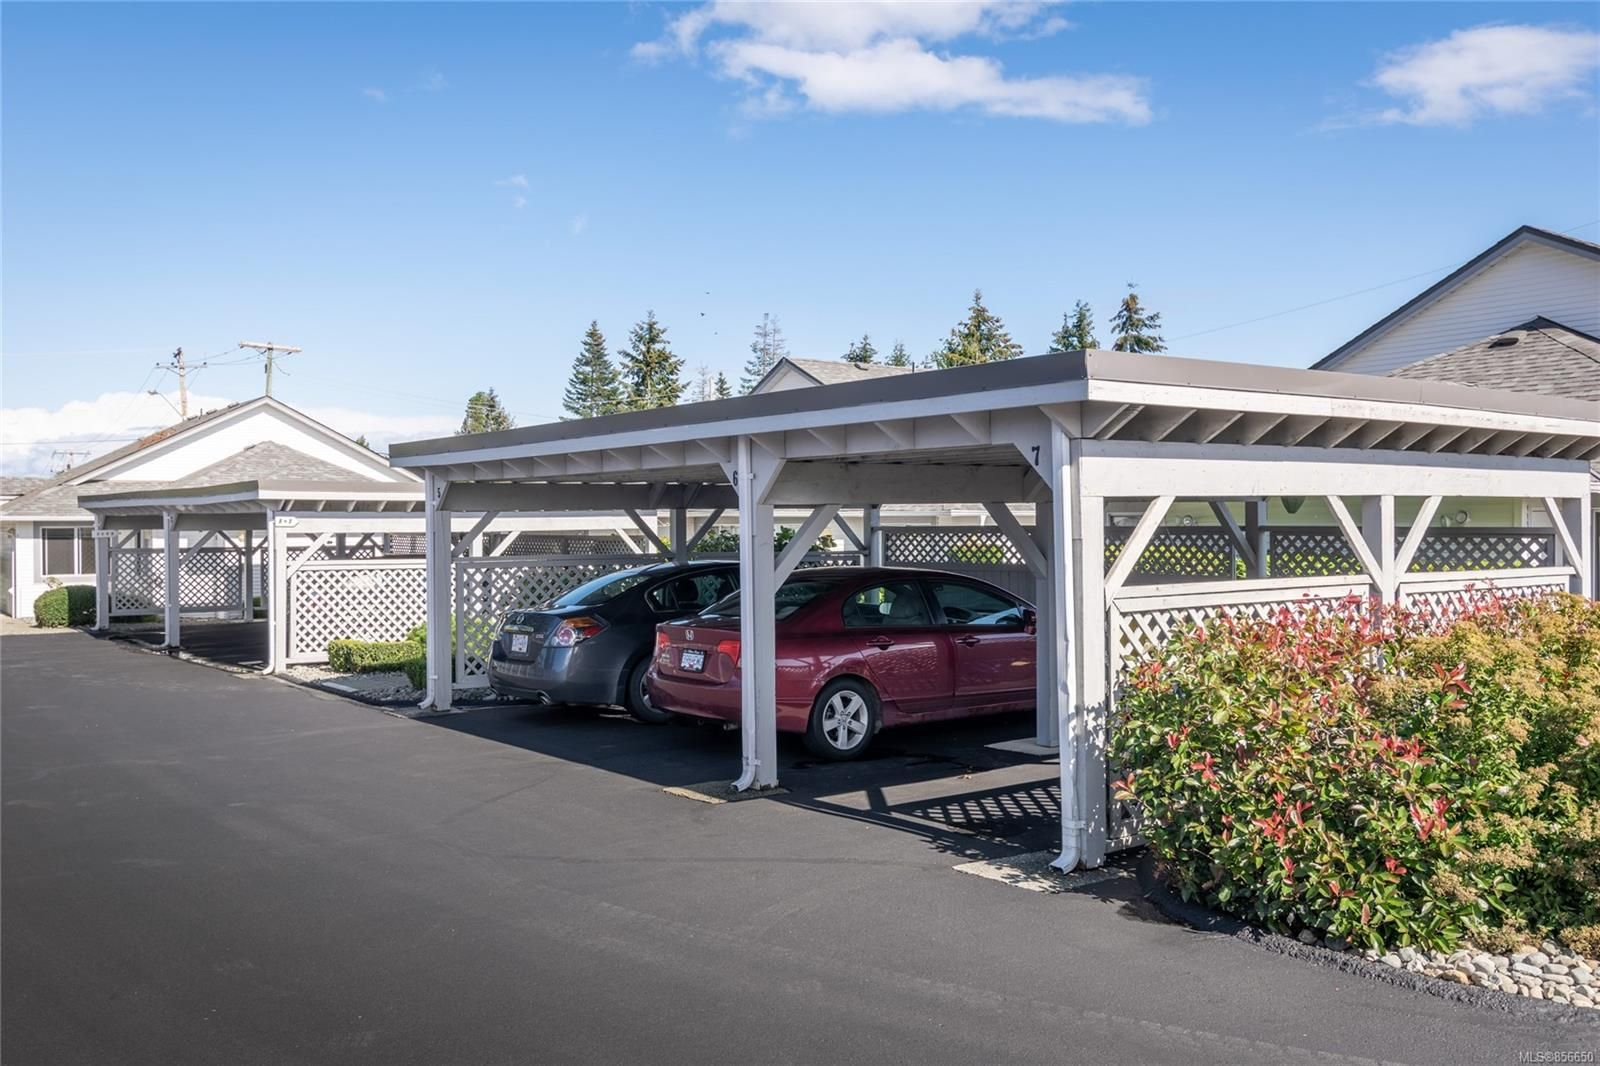 Photo 22: Photos: 4 305 Blower Rd in : PQ Parksville Row/Townhouse for sale (Parksville/Qualicum)  : MLS®# 856650